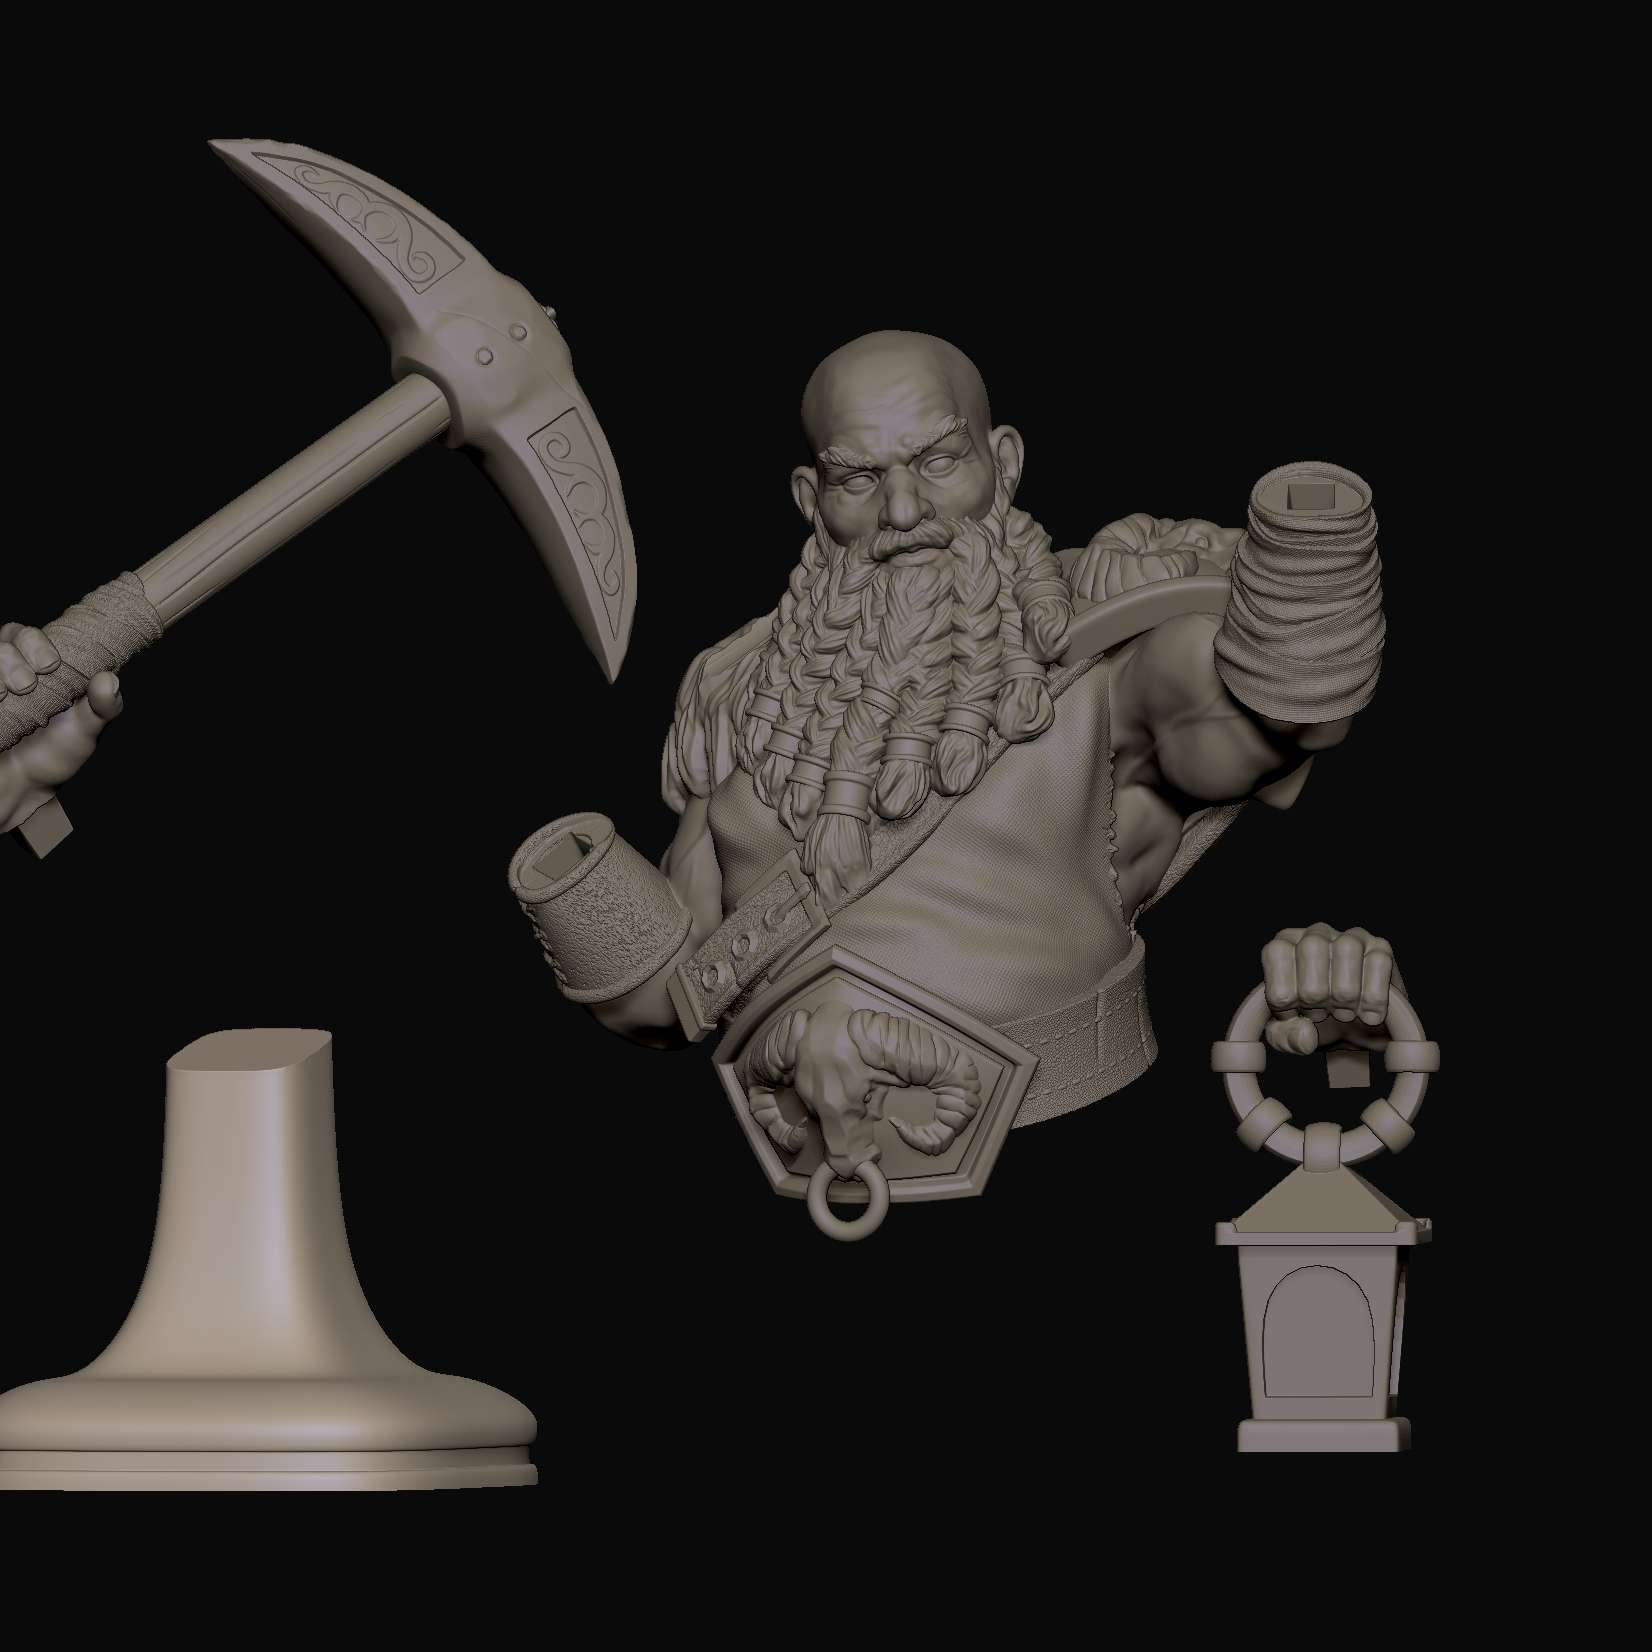 Dwarf Minerador - Busto Anão minerador para RPG de tabuleiro na escala de 100mm e 75mm.  Miner Dwarf Bust for board RPG on the scale of 100mm and 75mm - The best files for 3D printing in the world. Stl models divided into parts to facilitate 3D printing. All kinds of characters, decoration, cosplay, prosthetics, pieces. Quality in 3D printing. Affordable 3D models. Low cost. Collective purchases of 3D files.